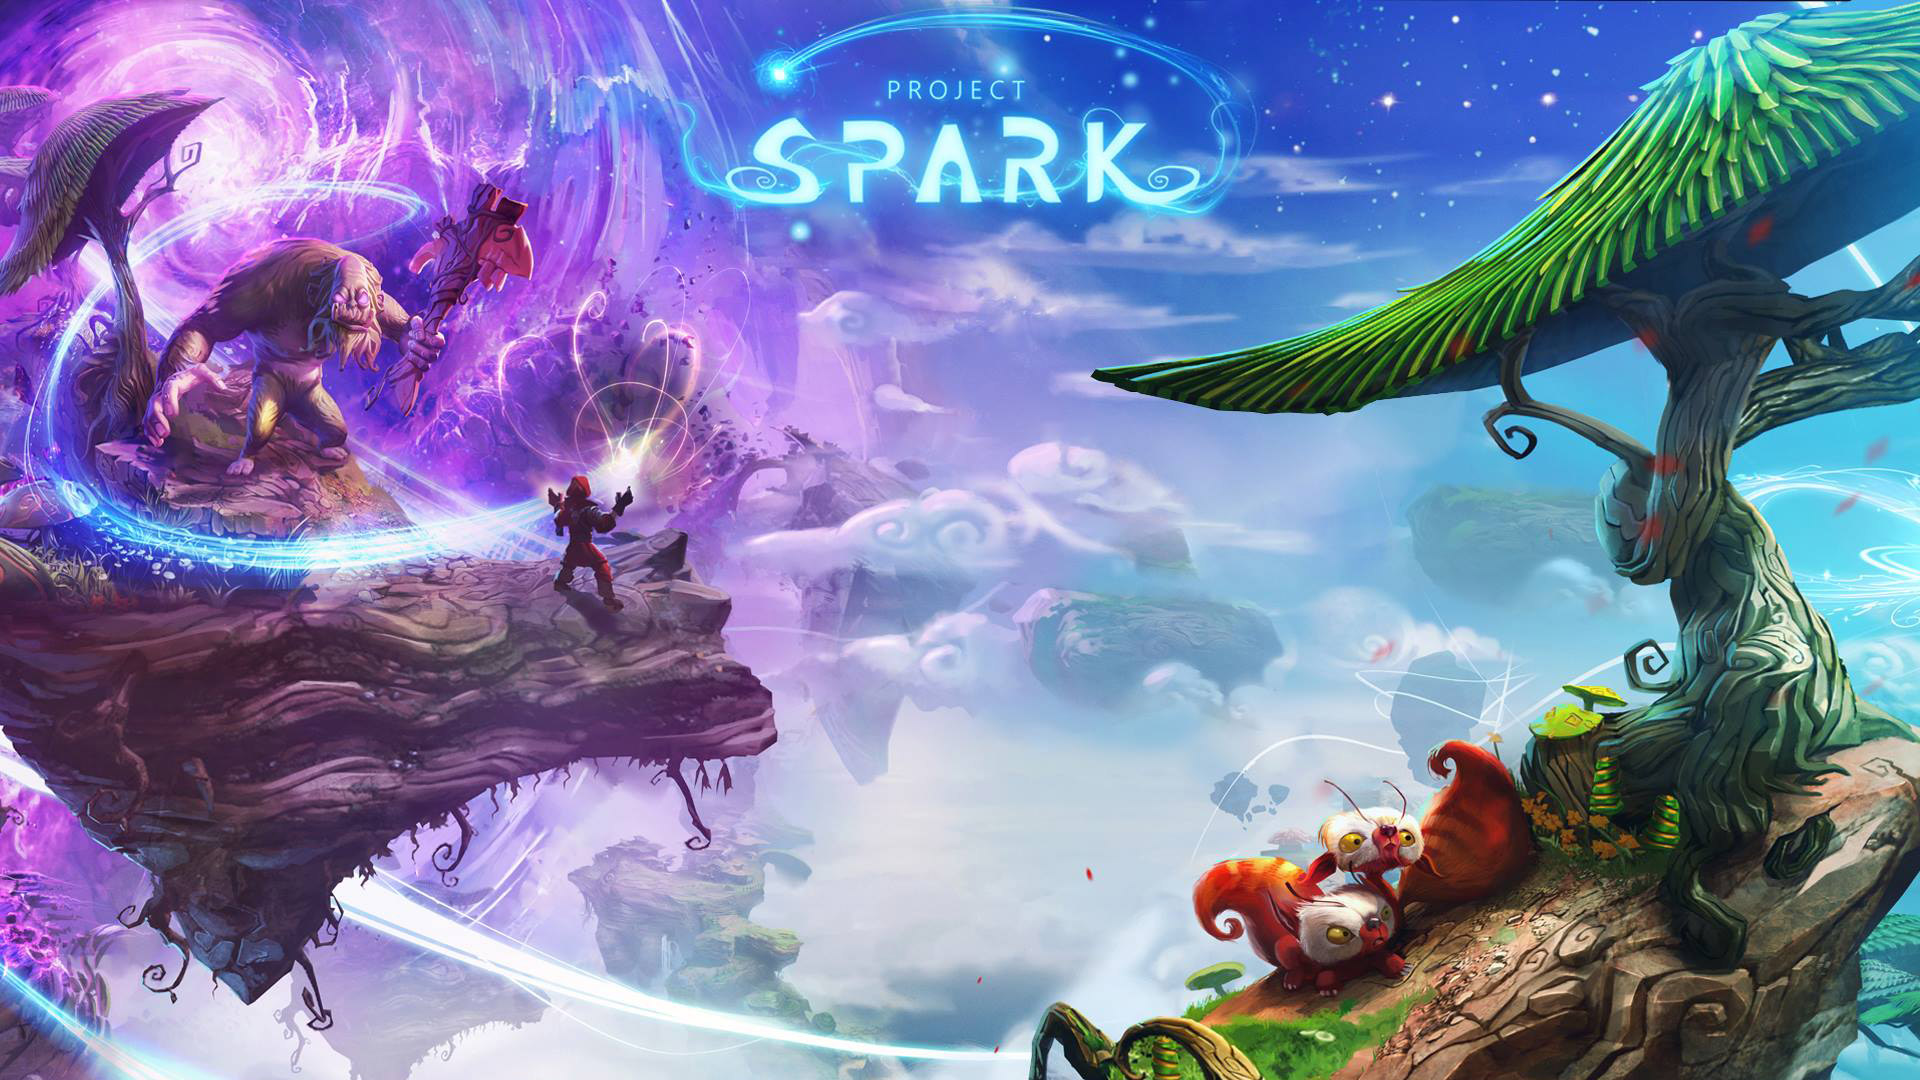 Project Spark Wallpaper in 1920x1080